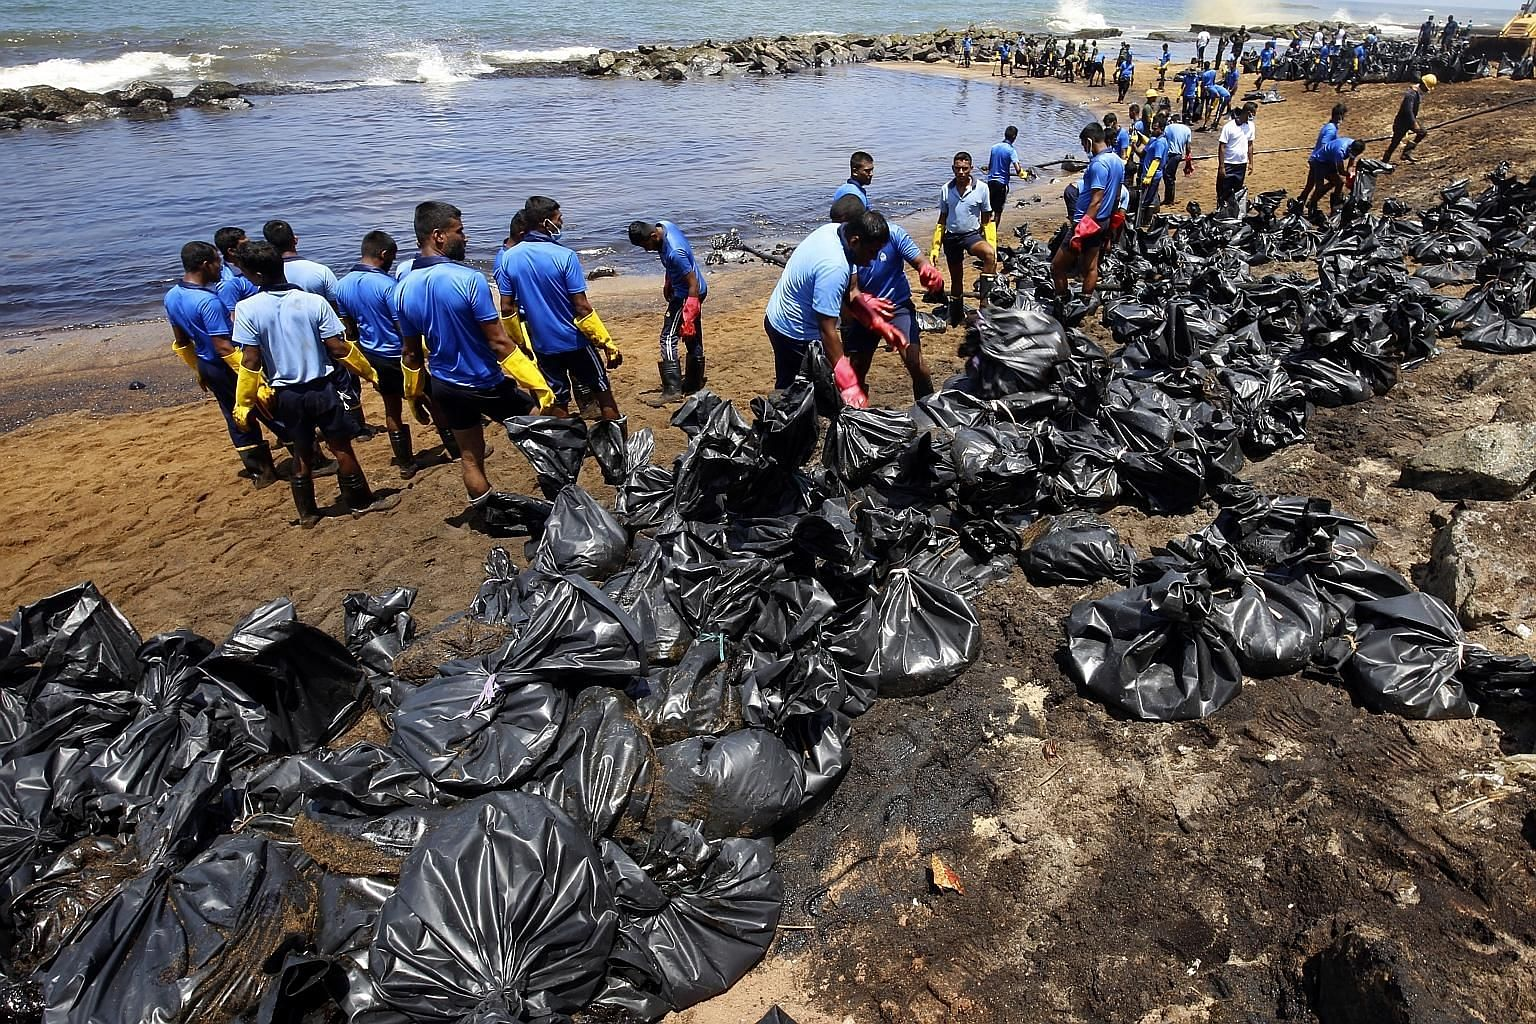 Sri Lankan navy personnel cleaning up an oil spill from a damaged pipeline on the shore off the north-western coast in Dikkowita, close to Colombo, on Tuesday. According to reports, a damaged ship-to-shore pipeline leaked fuel into the sea on Saturda